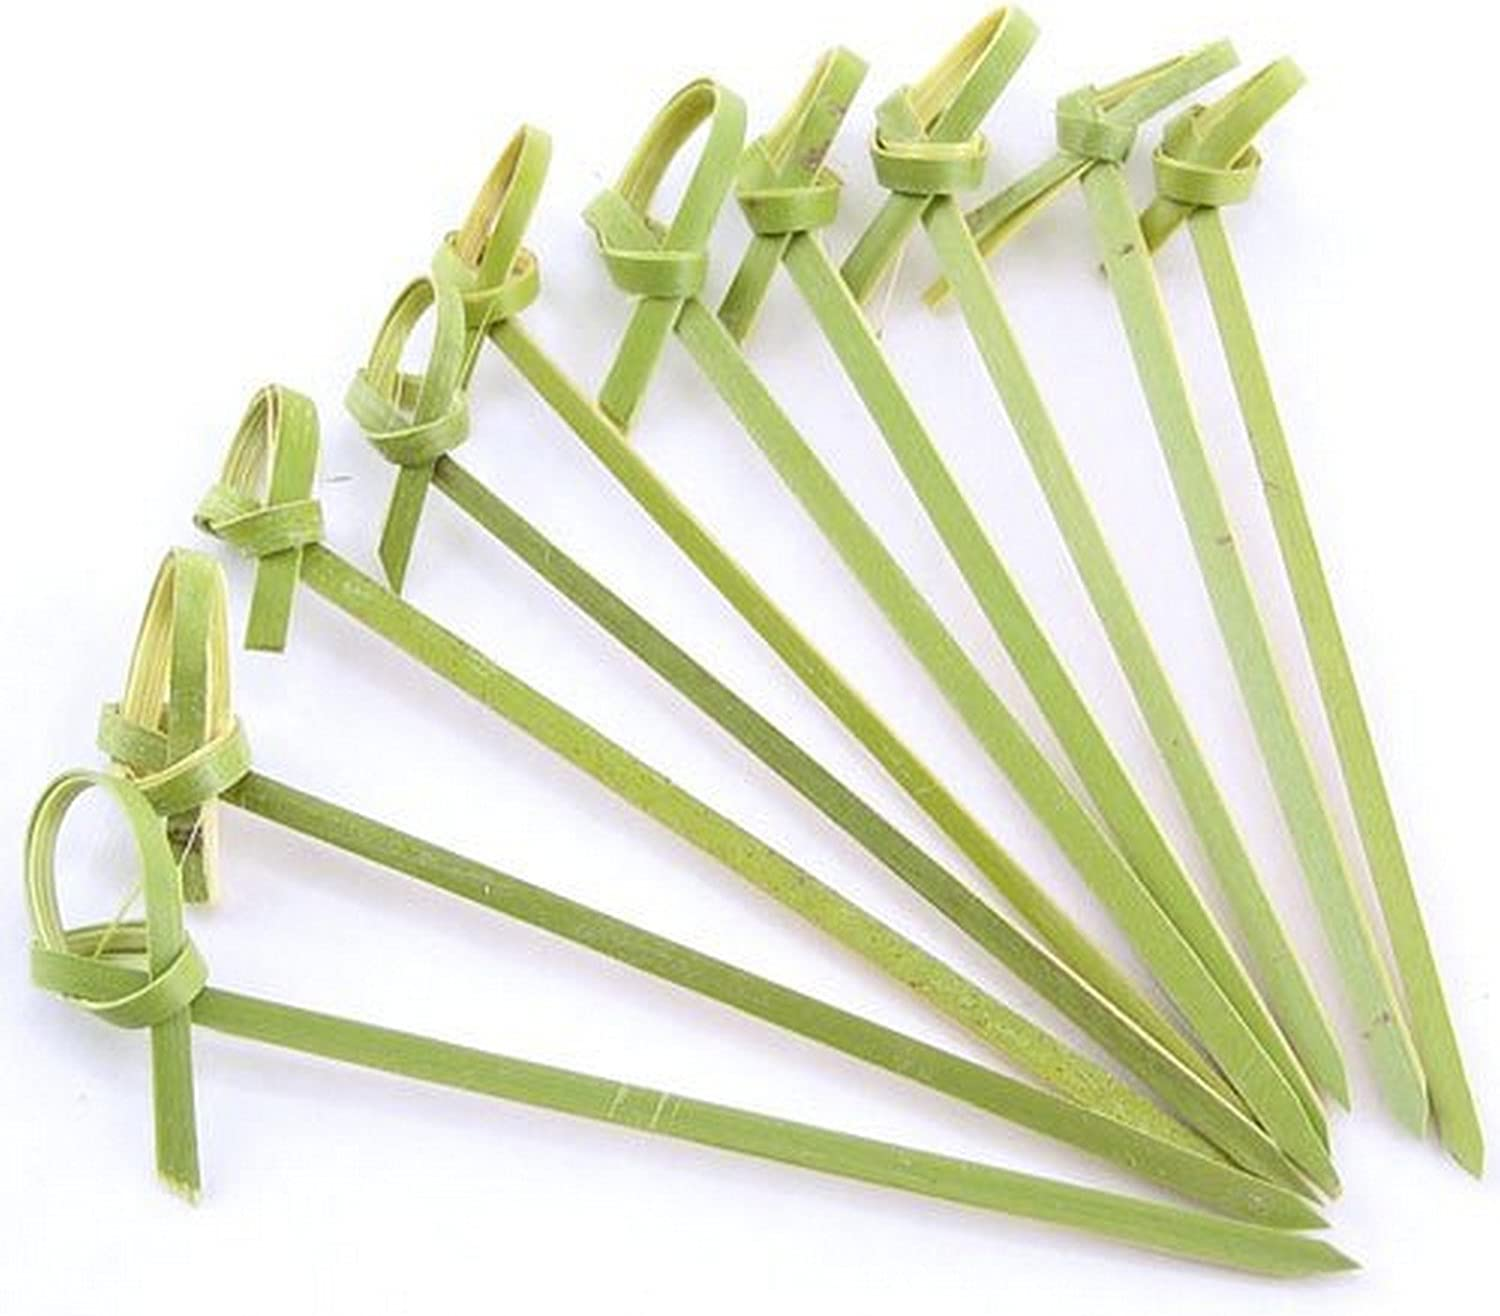 JapanBargain 1596x2, Bamboo Cocktail Picks Skewers for Appetizer Snack Sandwich Finger Food Tapas Fruit Kabob BBQ Hors D'oeuvre Twisted End Knotted Bamboo Sticks, 4 inch, 100pcs